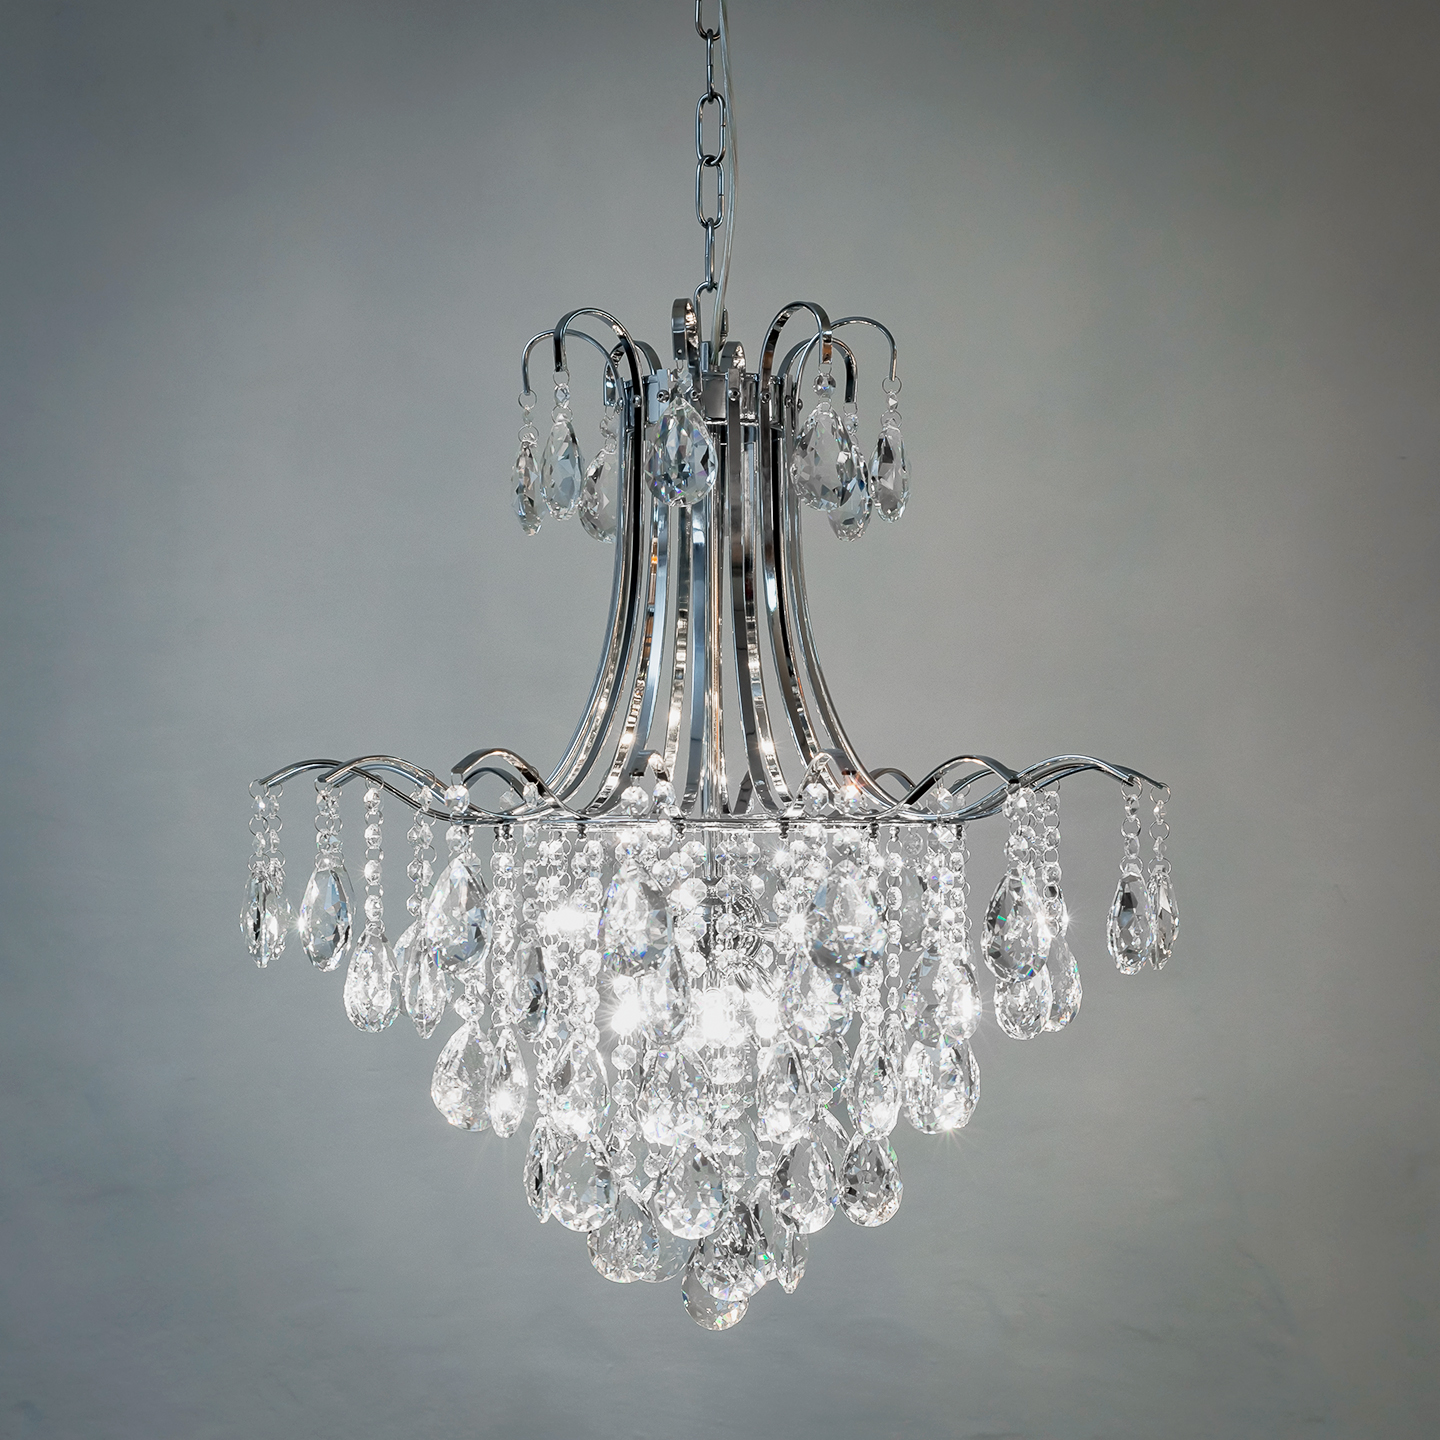 expensive capitol top the edition design world chandeliers in chandelier us limited building most designer